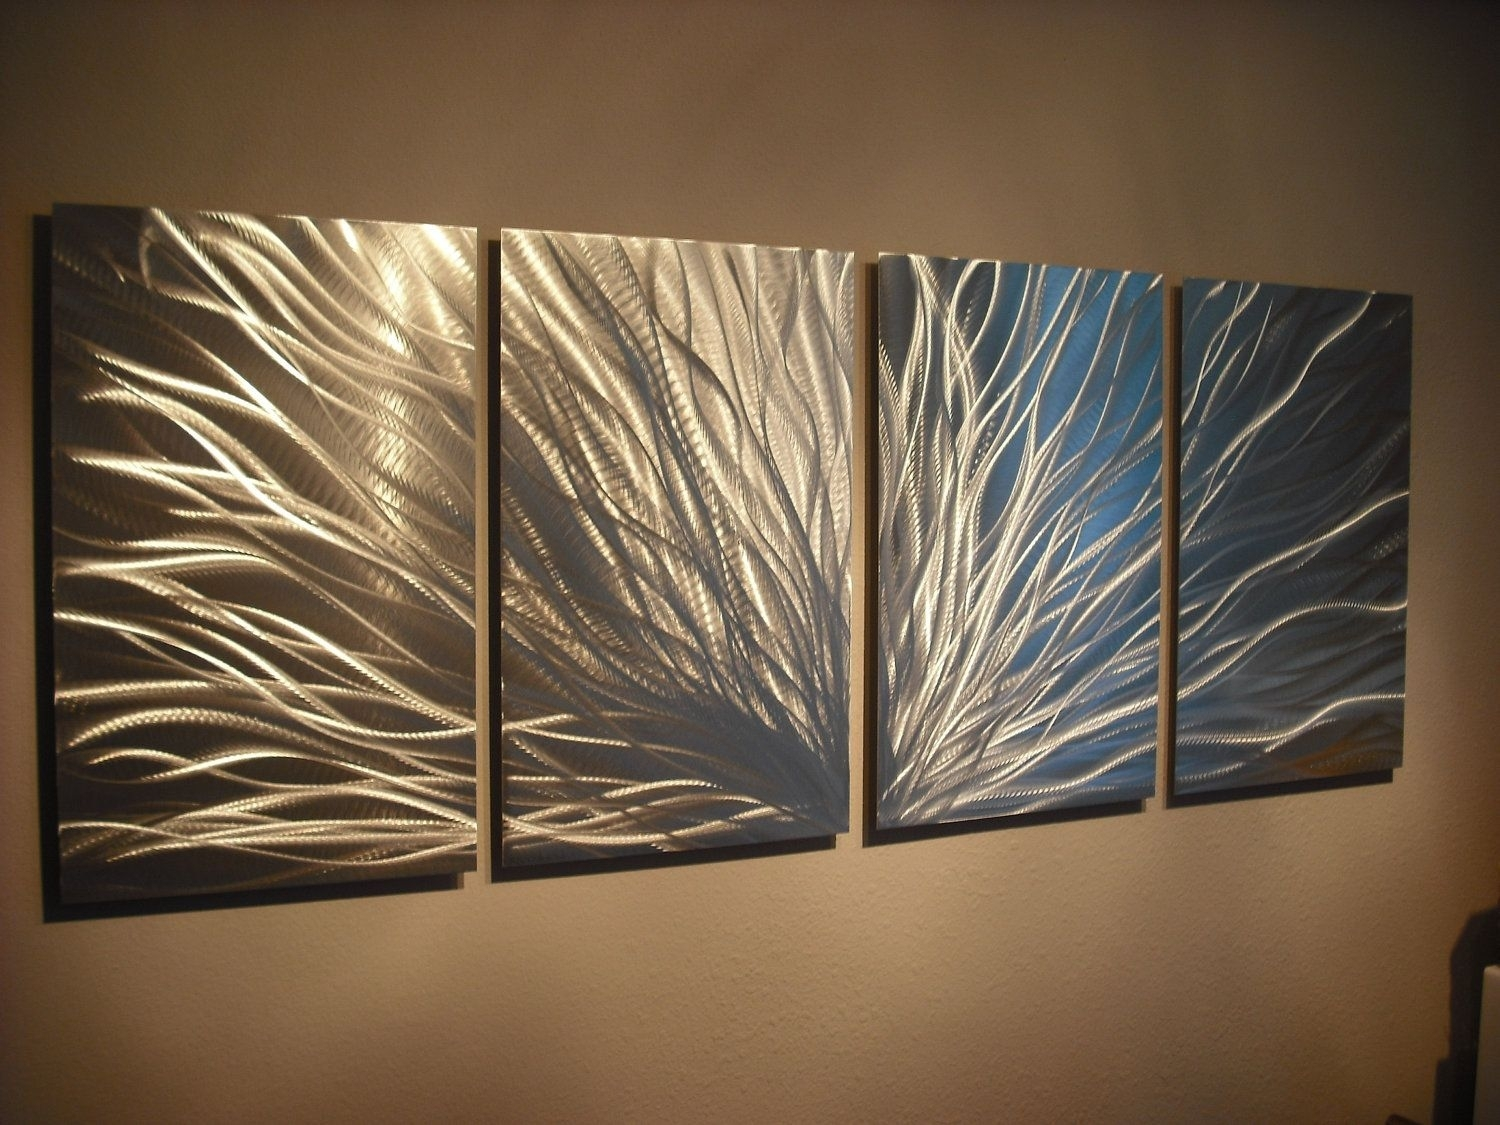 Metal Wall Art Decor Abstract Aluminum Contemporary Modern Sculpture In Contemporary Wall Art Decors (View 9 of 20)